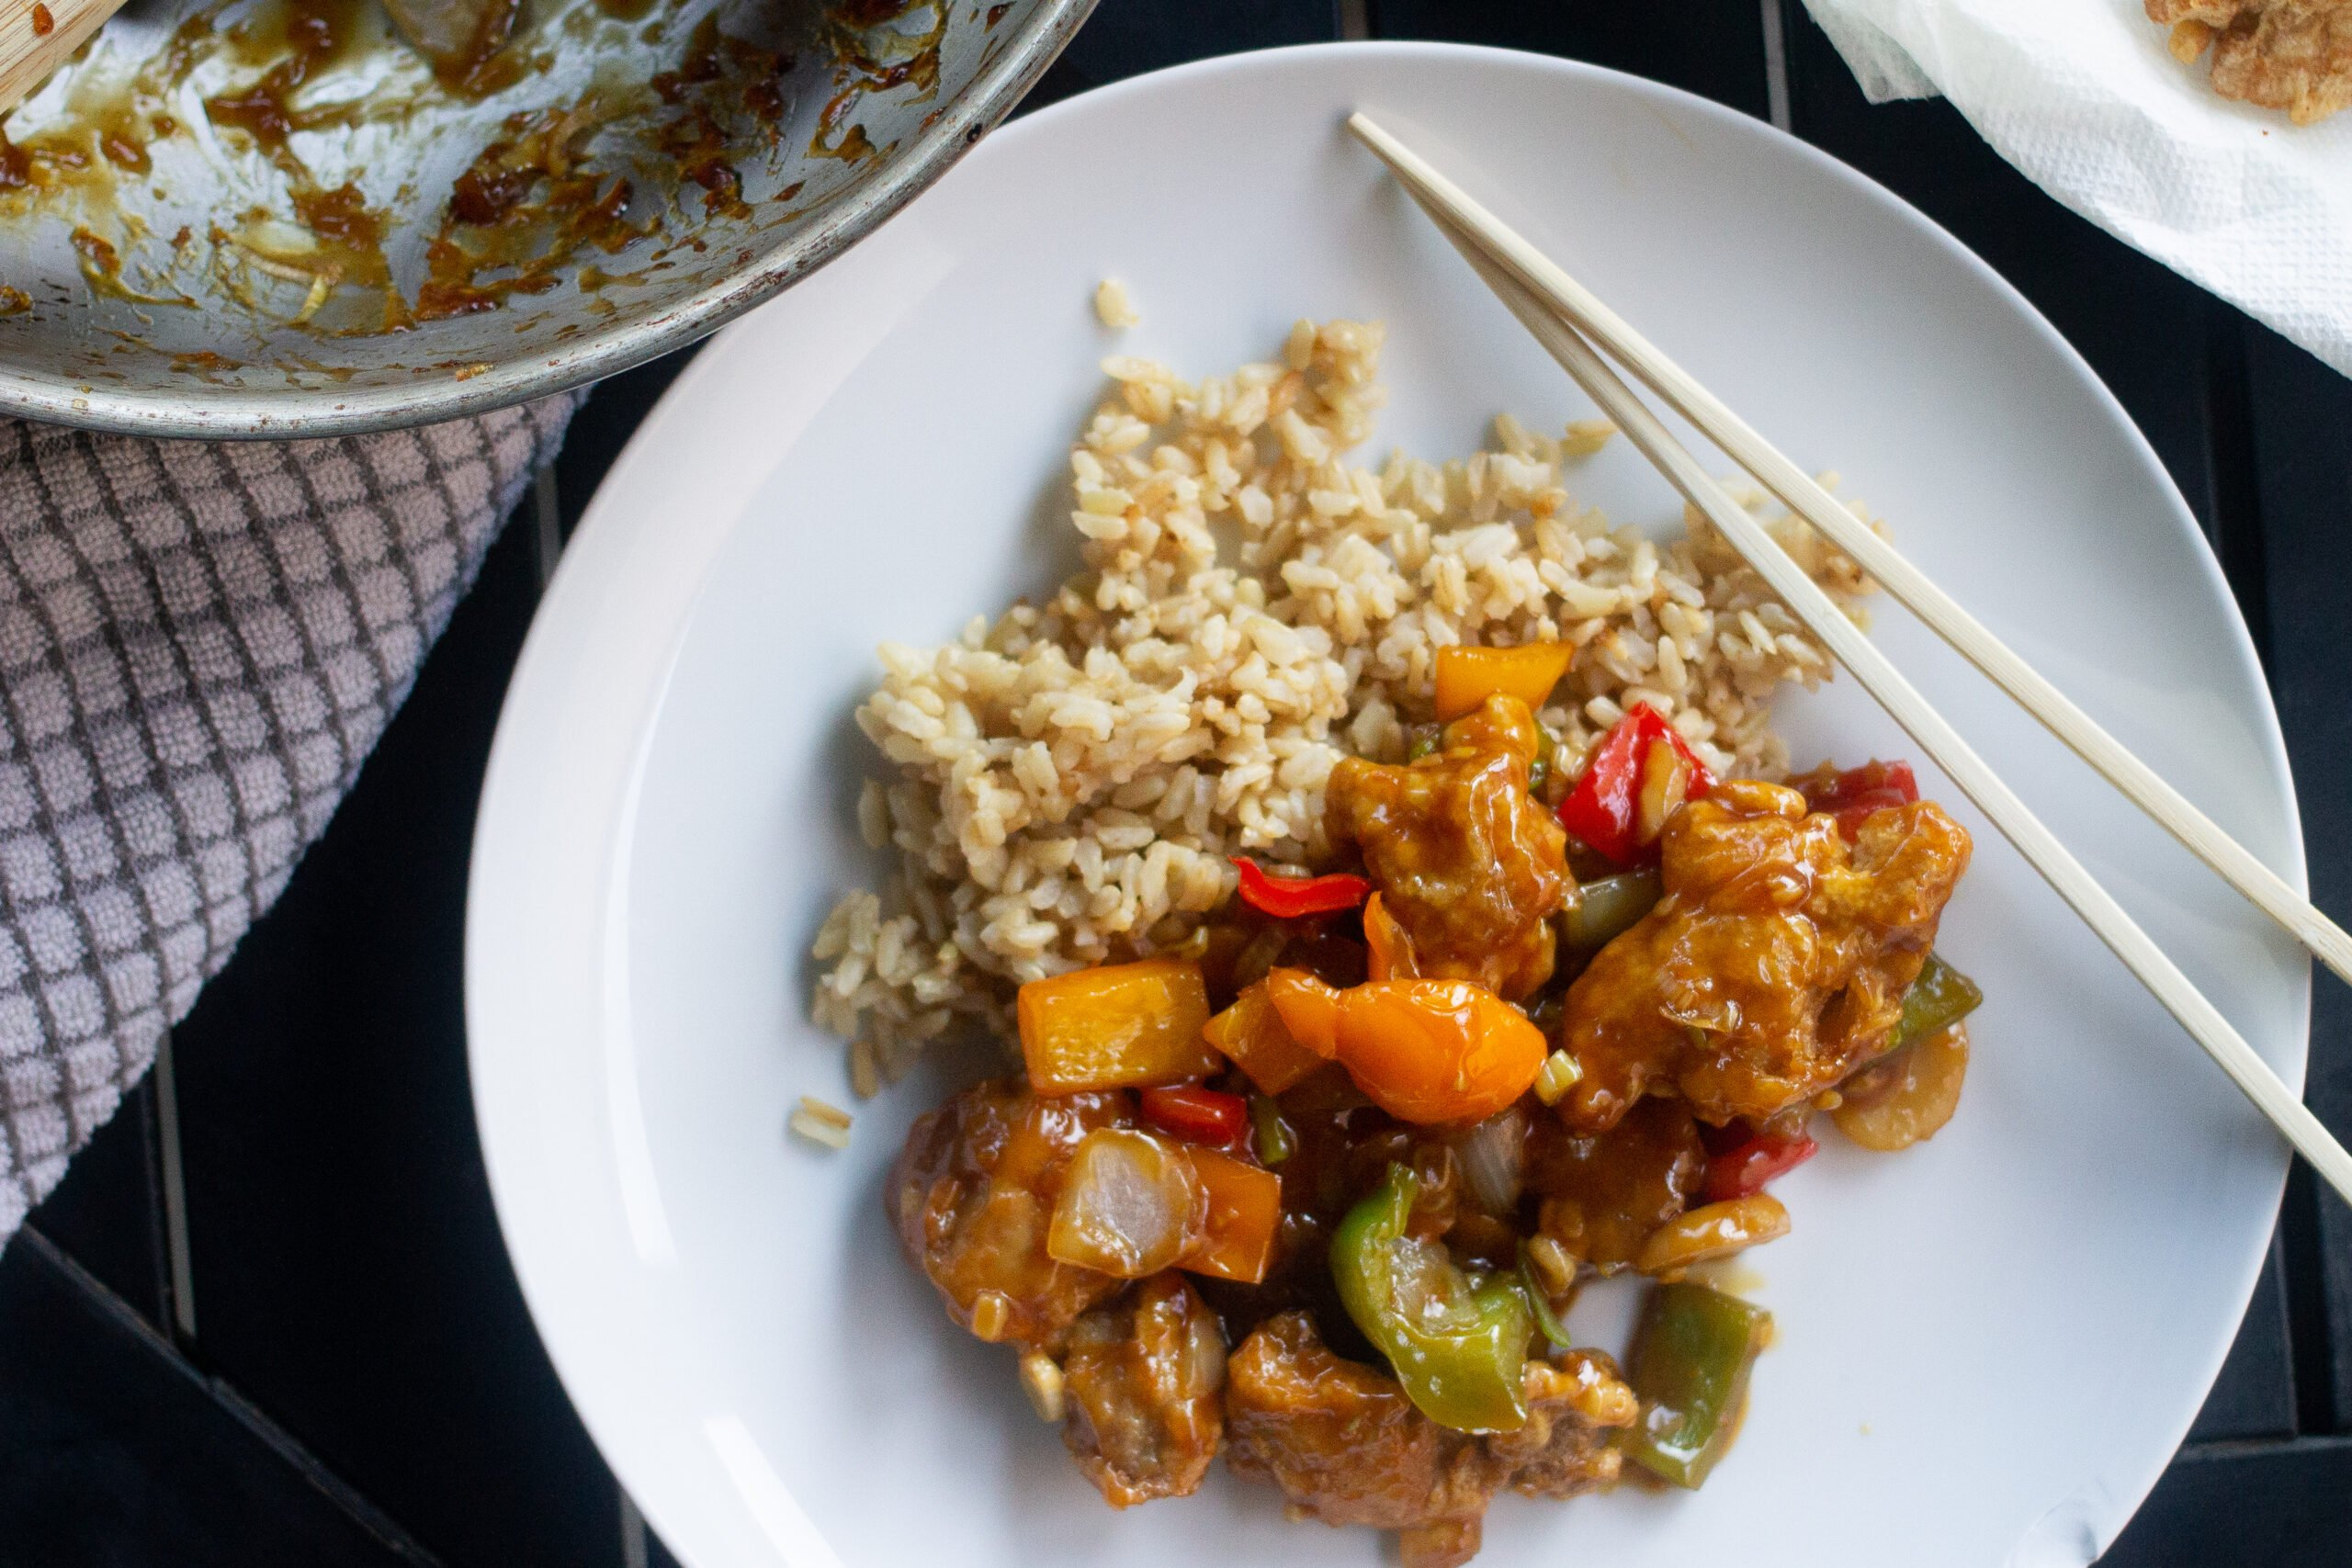 Chinese Orange Chicken recipe from Edible Times